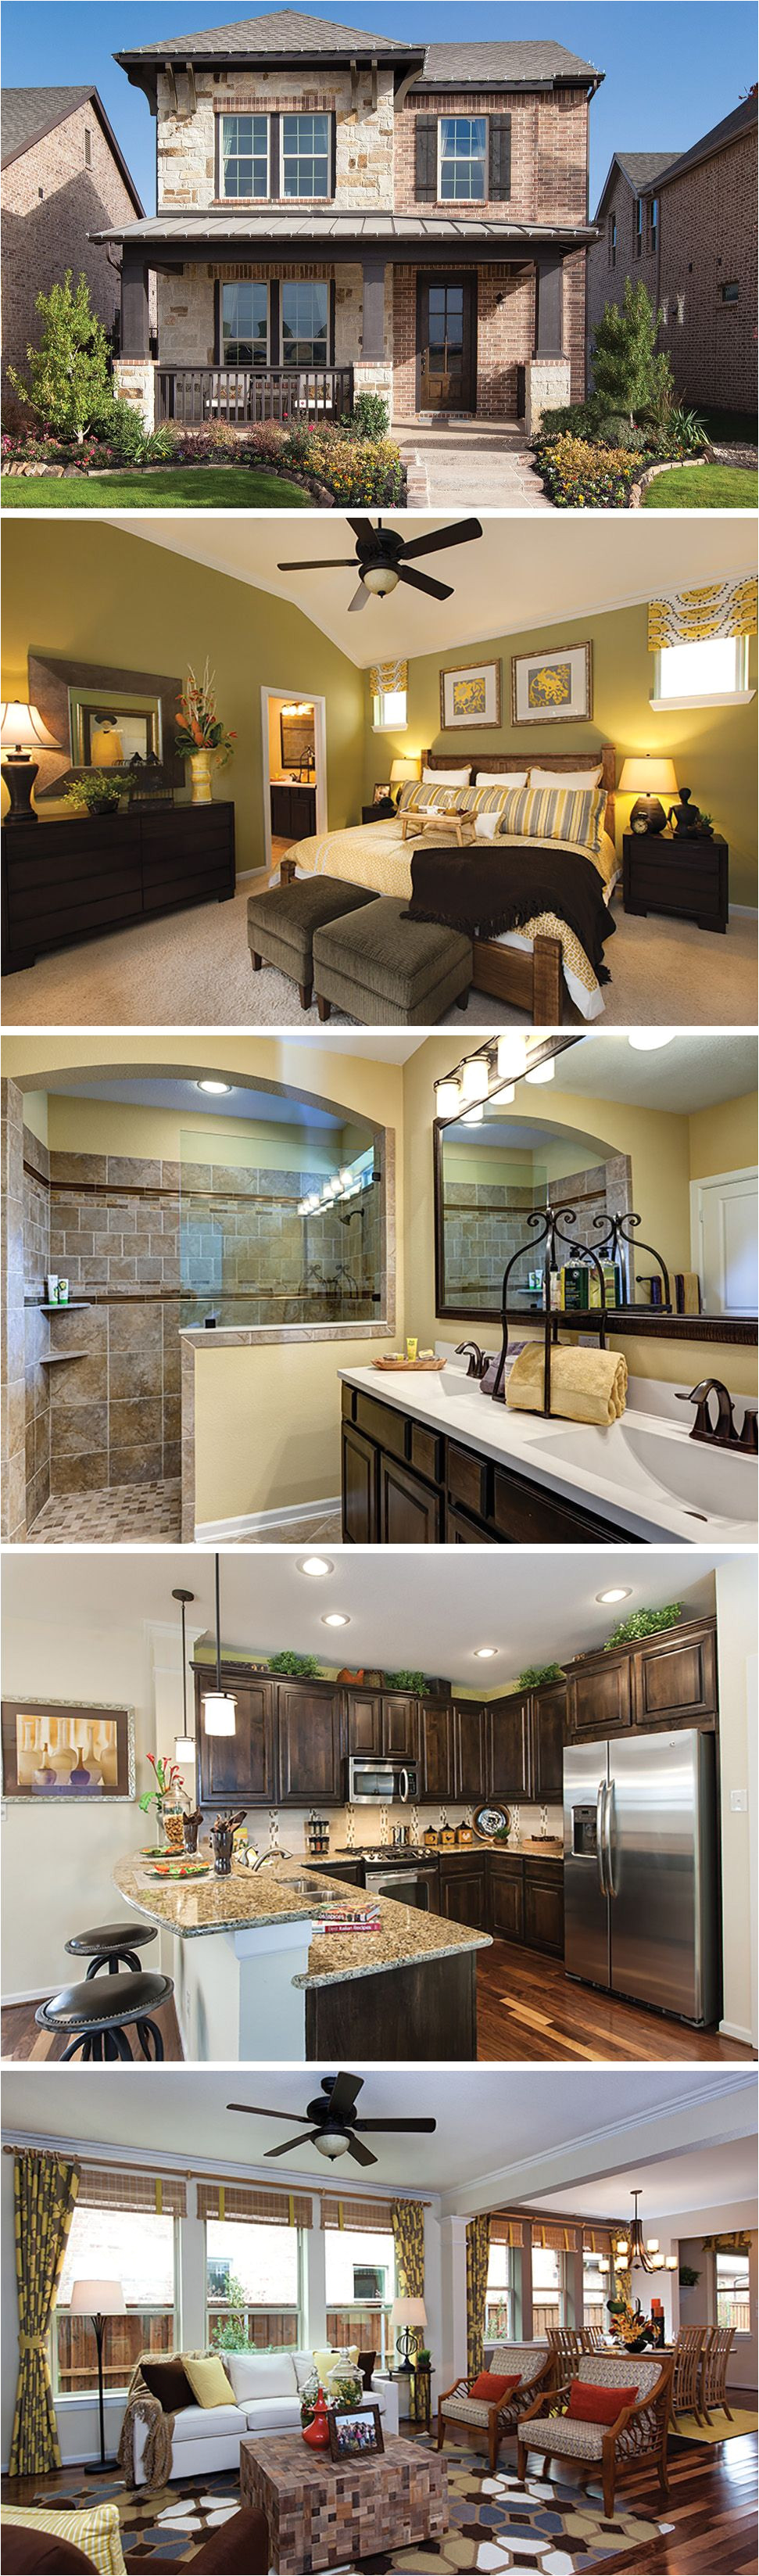 the grayton by david weekley homes in viridian cottage is a 4 bedroom 2 bath home